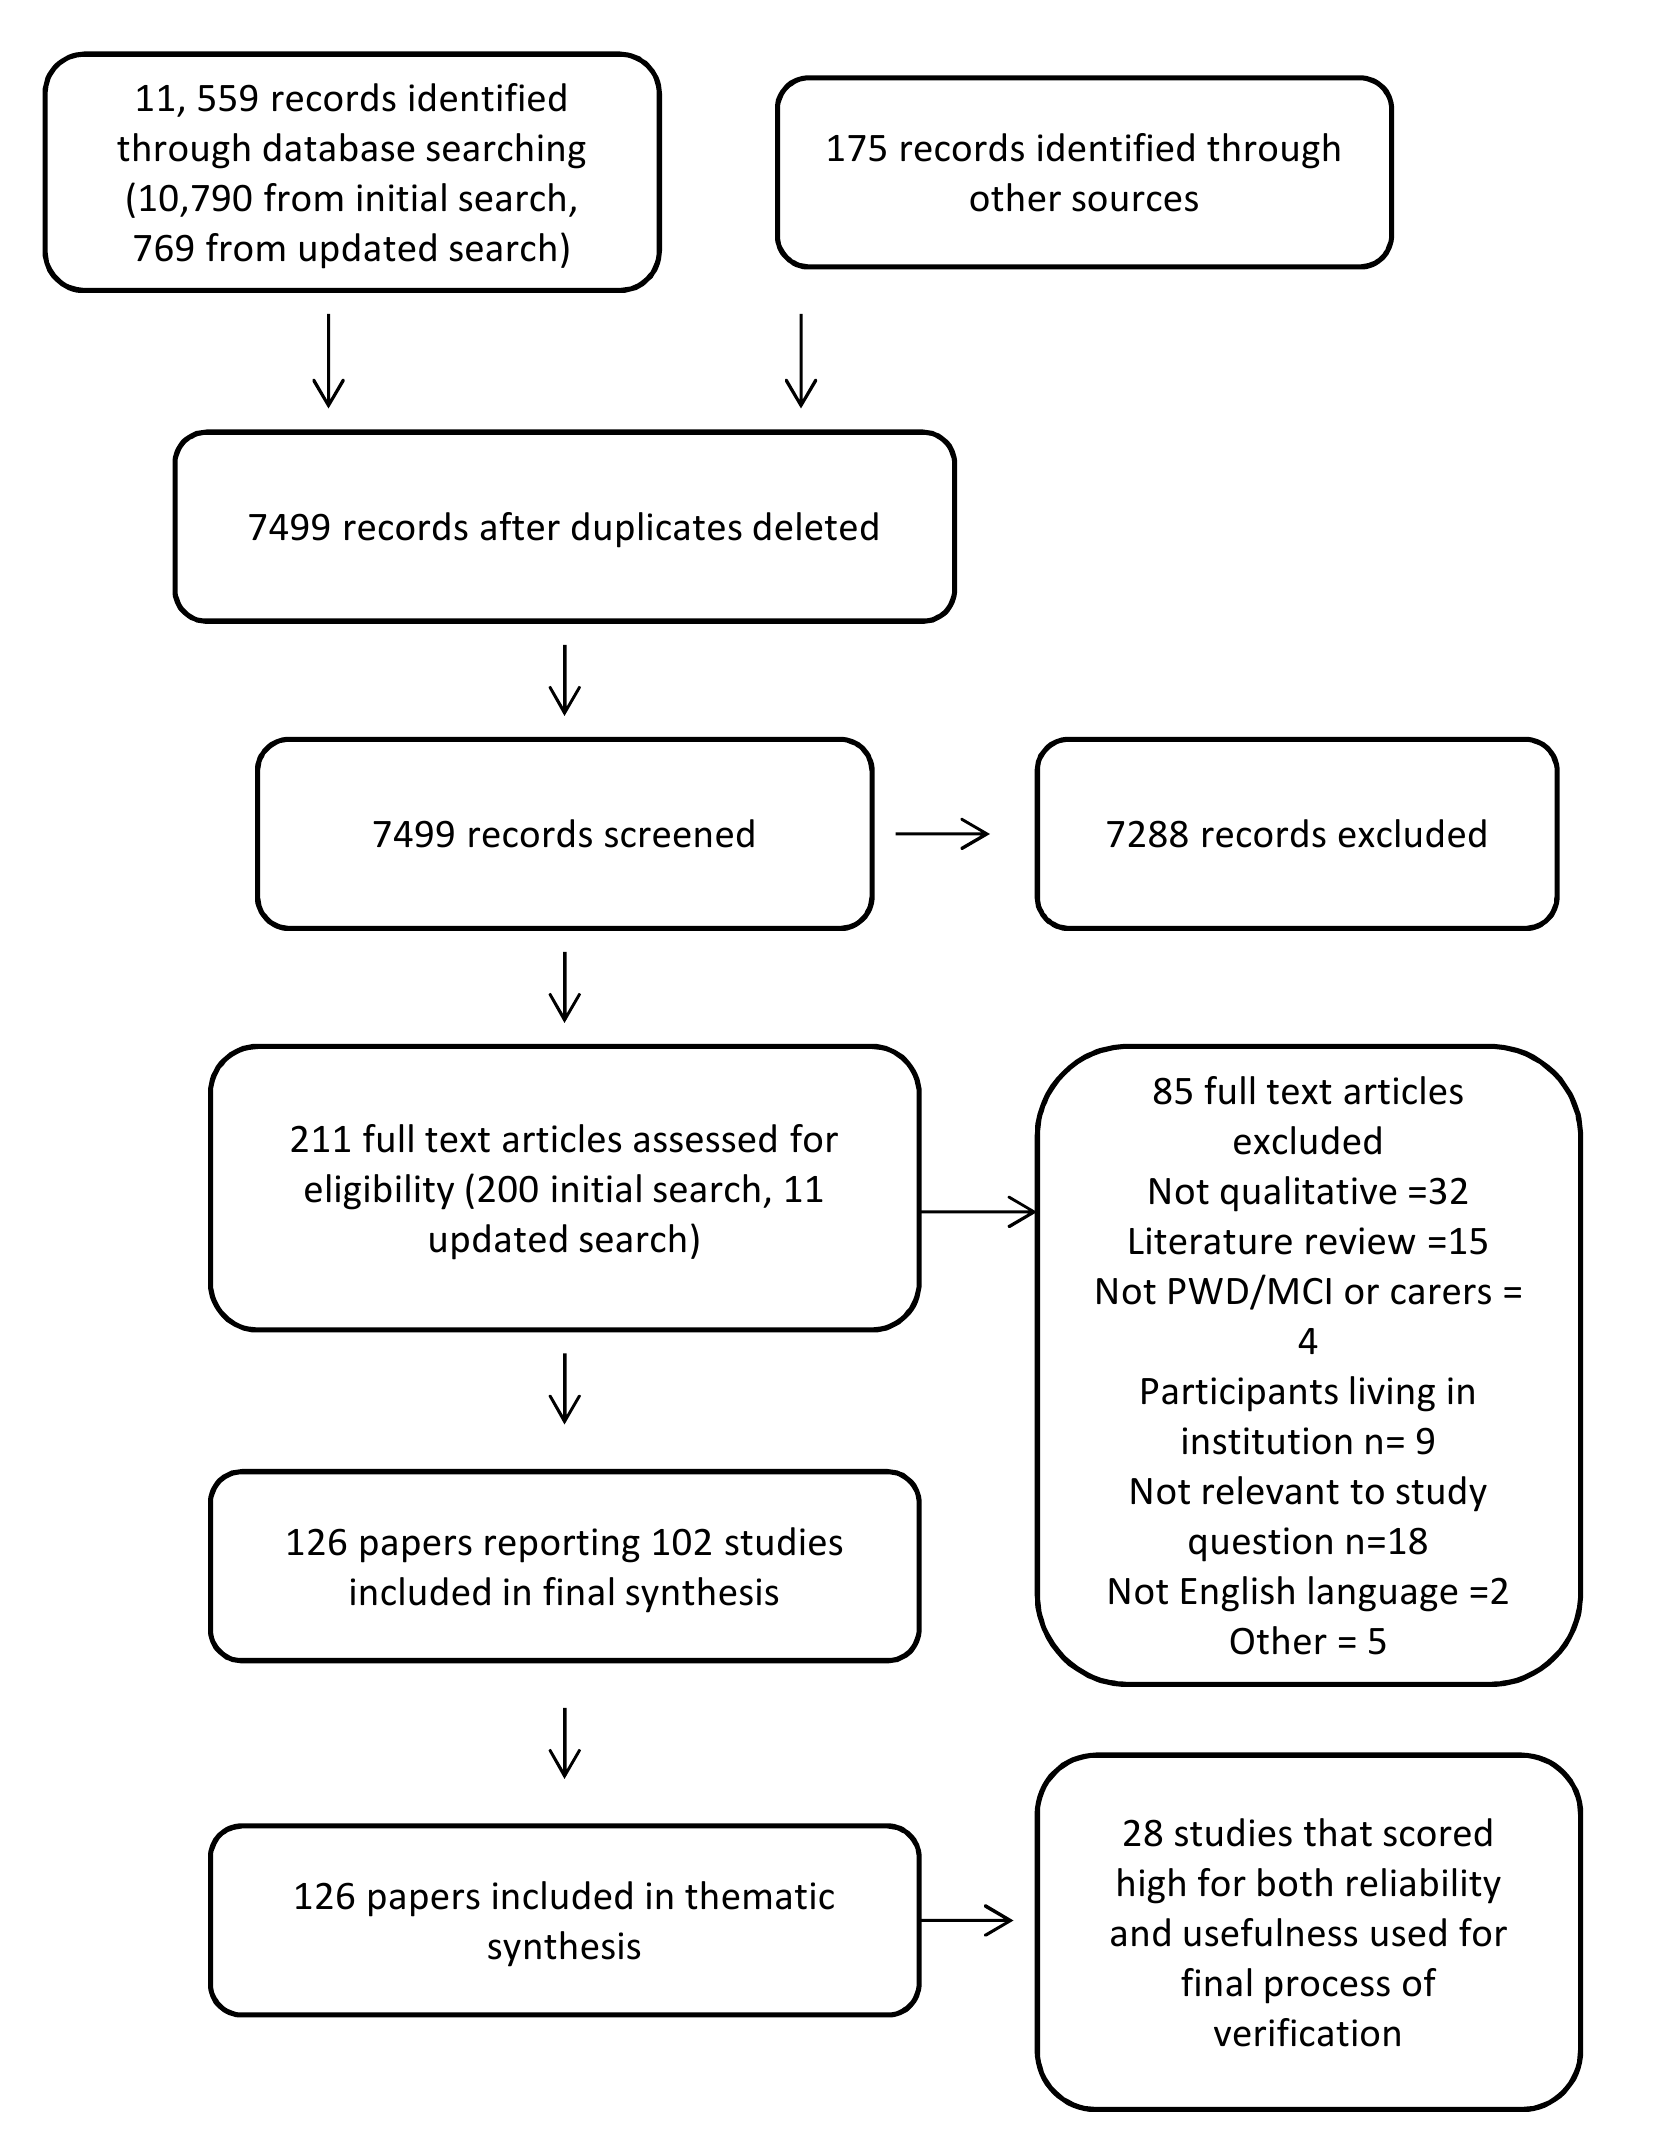 Flow chart of study selection process.